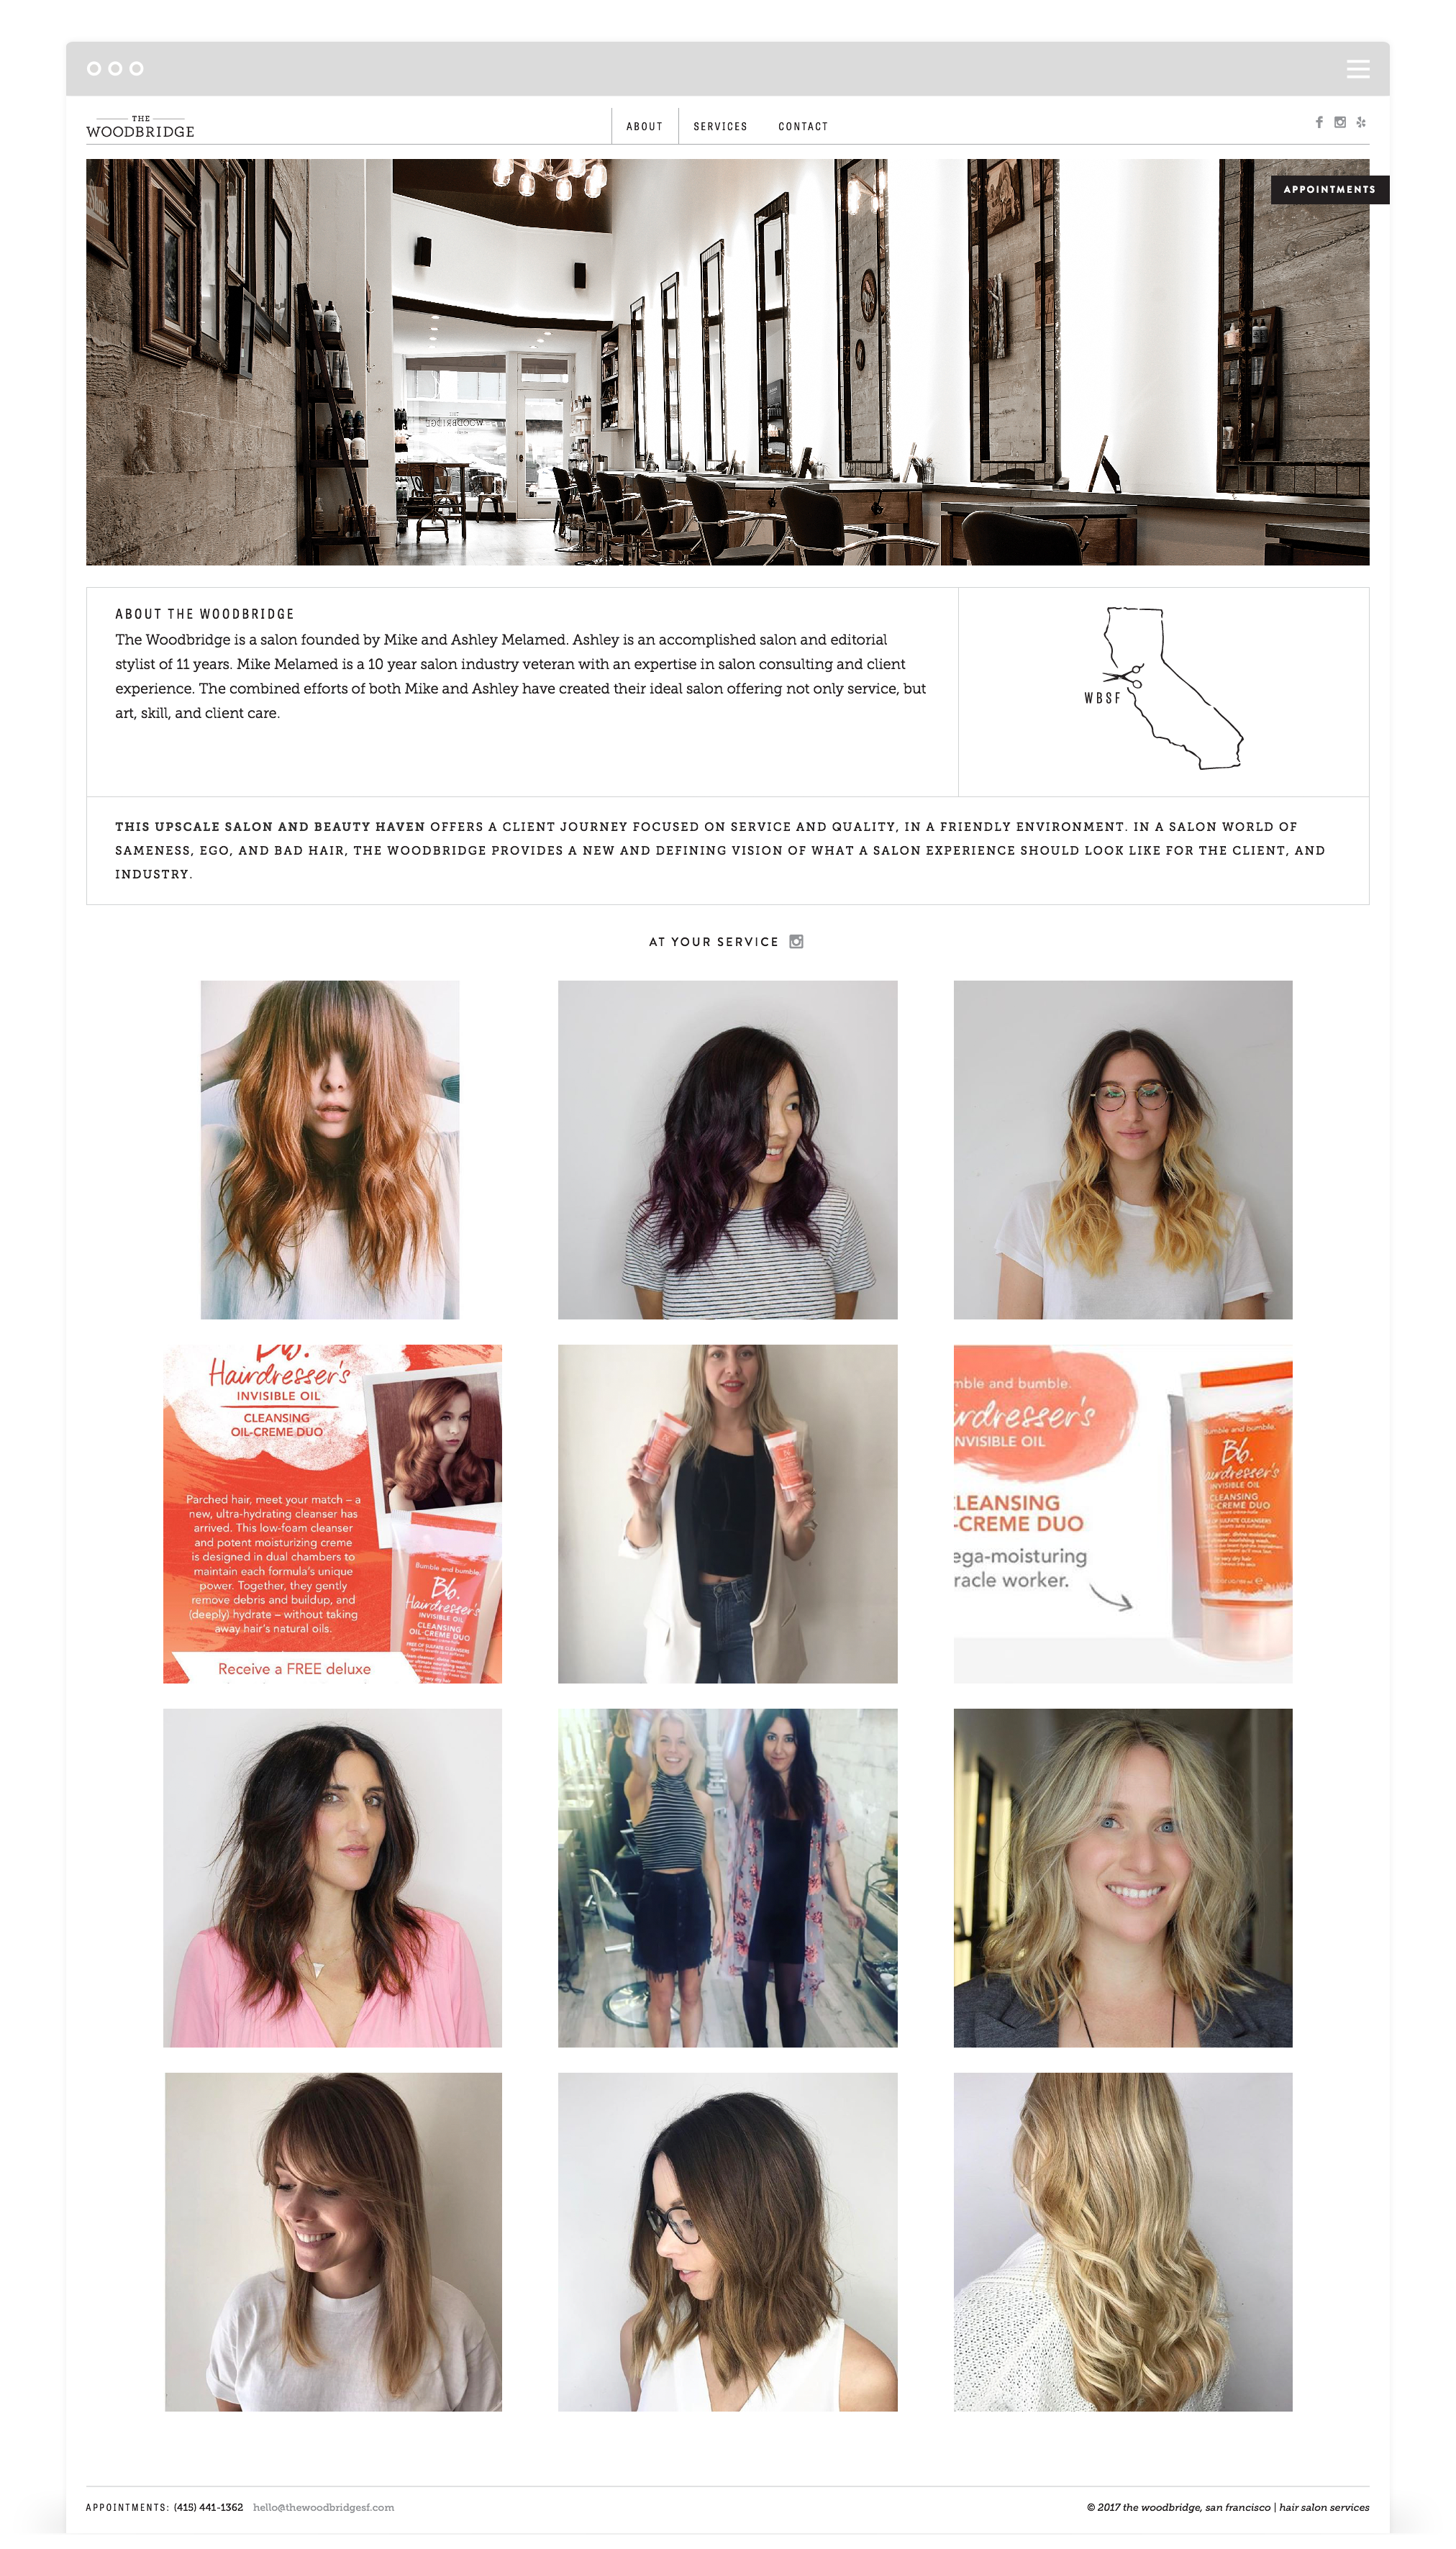 Website Development by Second + West for The Woodbridge Salon in San Francisco, CA